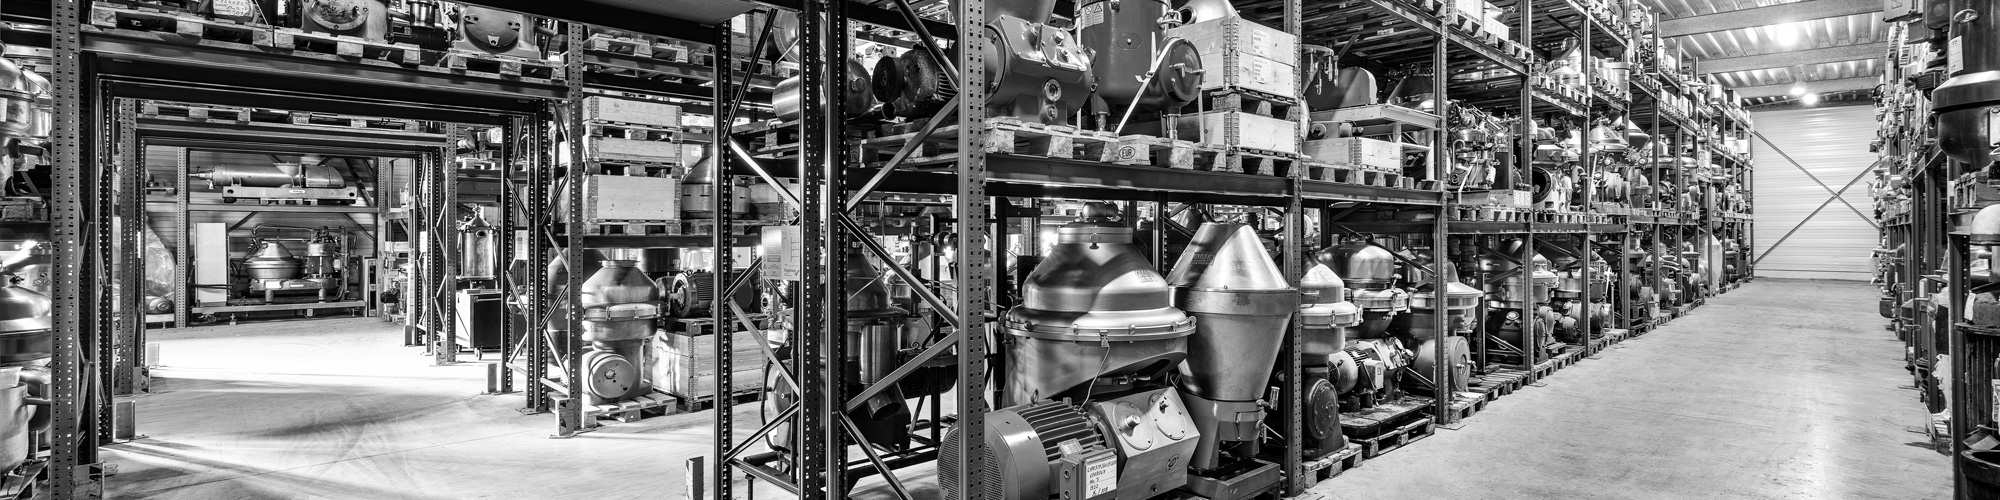 Decanters, separators and centrifuges of Centrimax